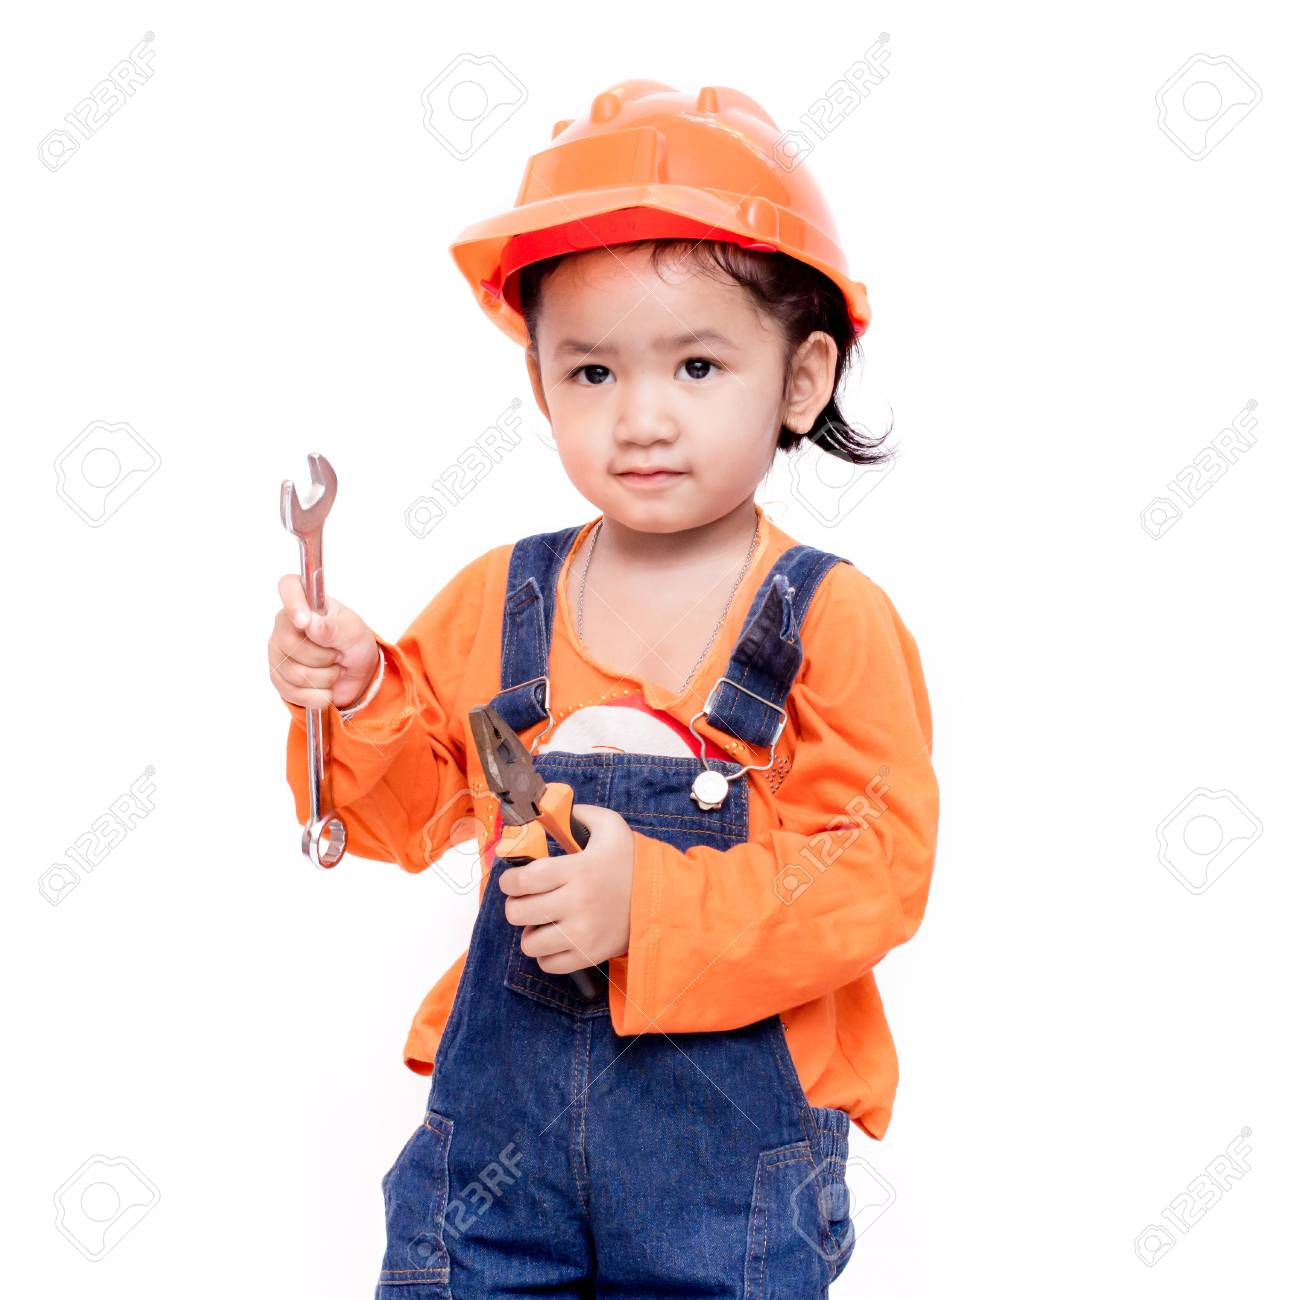 70e411ff068 Asian Engineer baby with tools in hand Isolated on white background Stock  Photo - 28381772